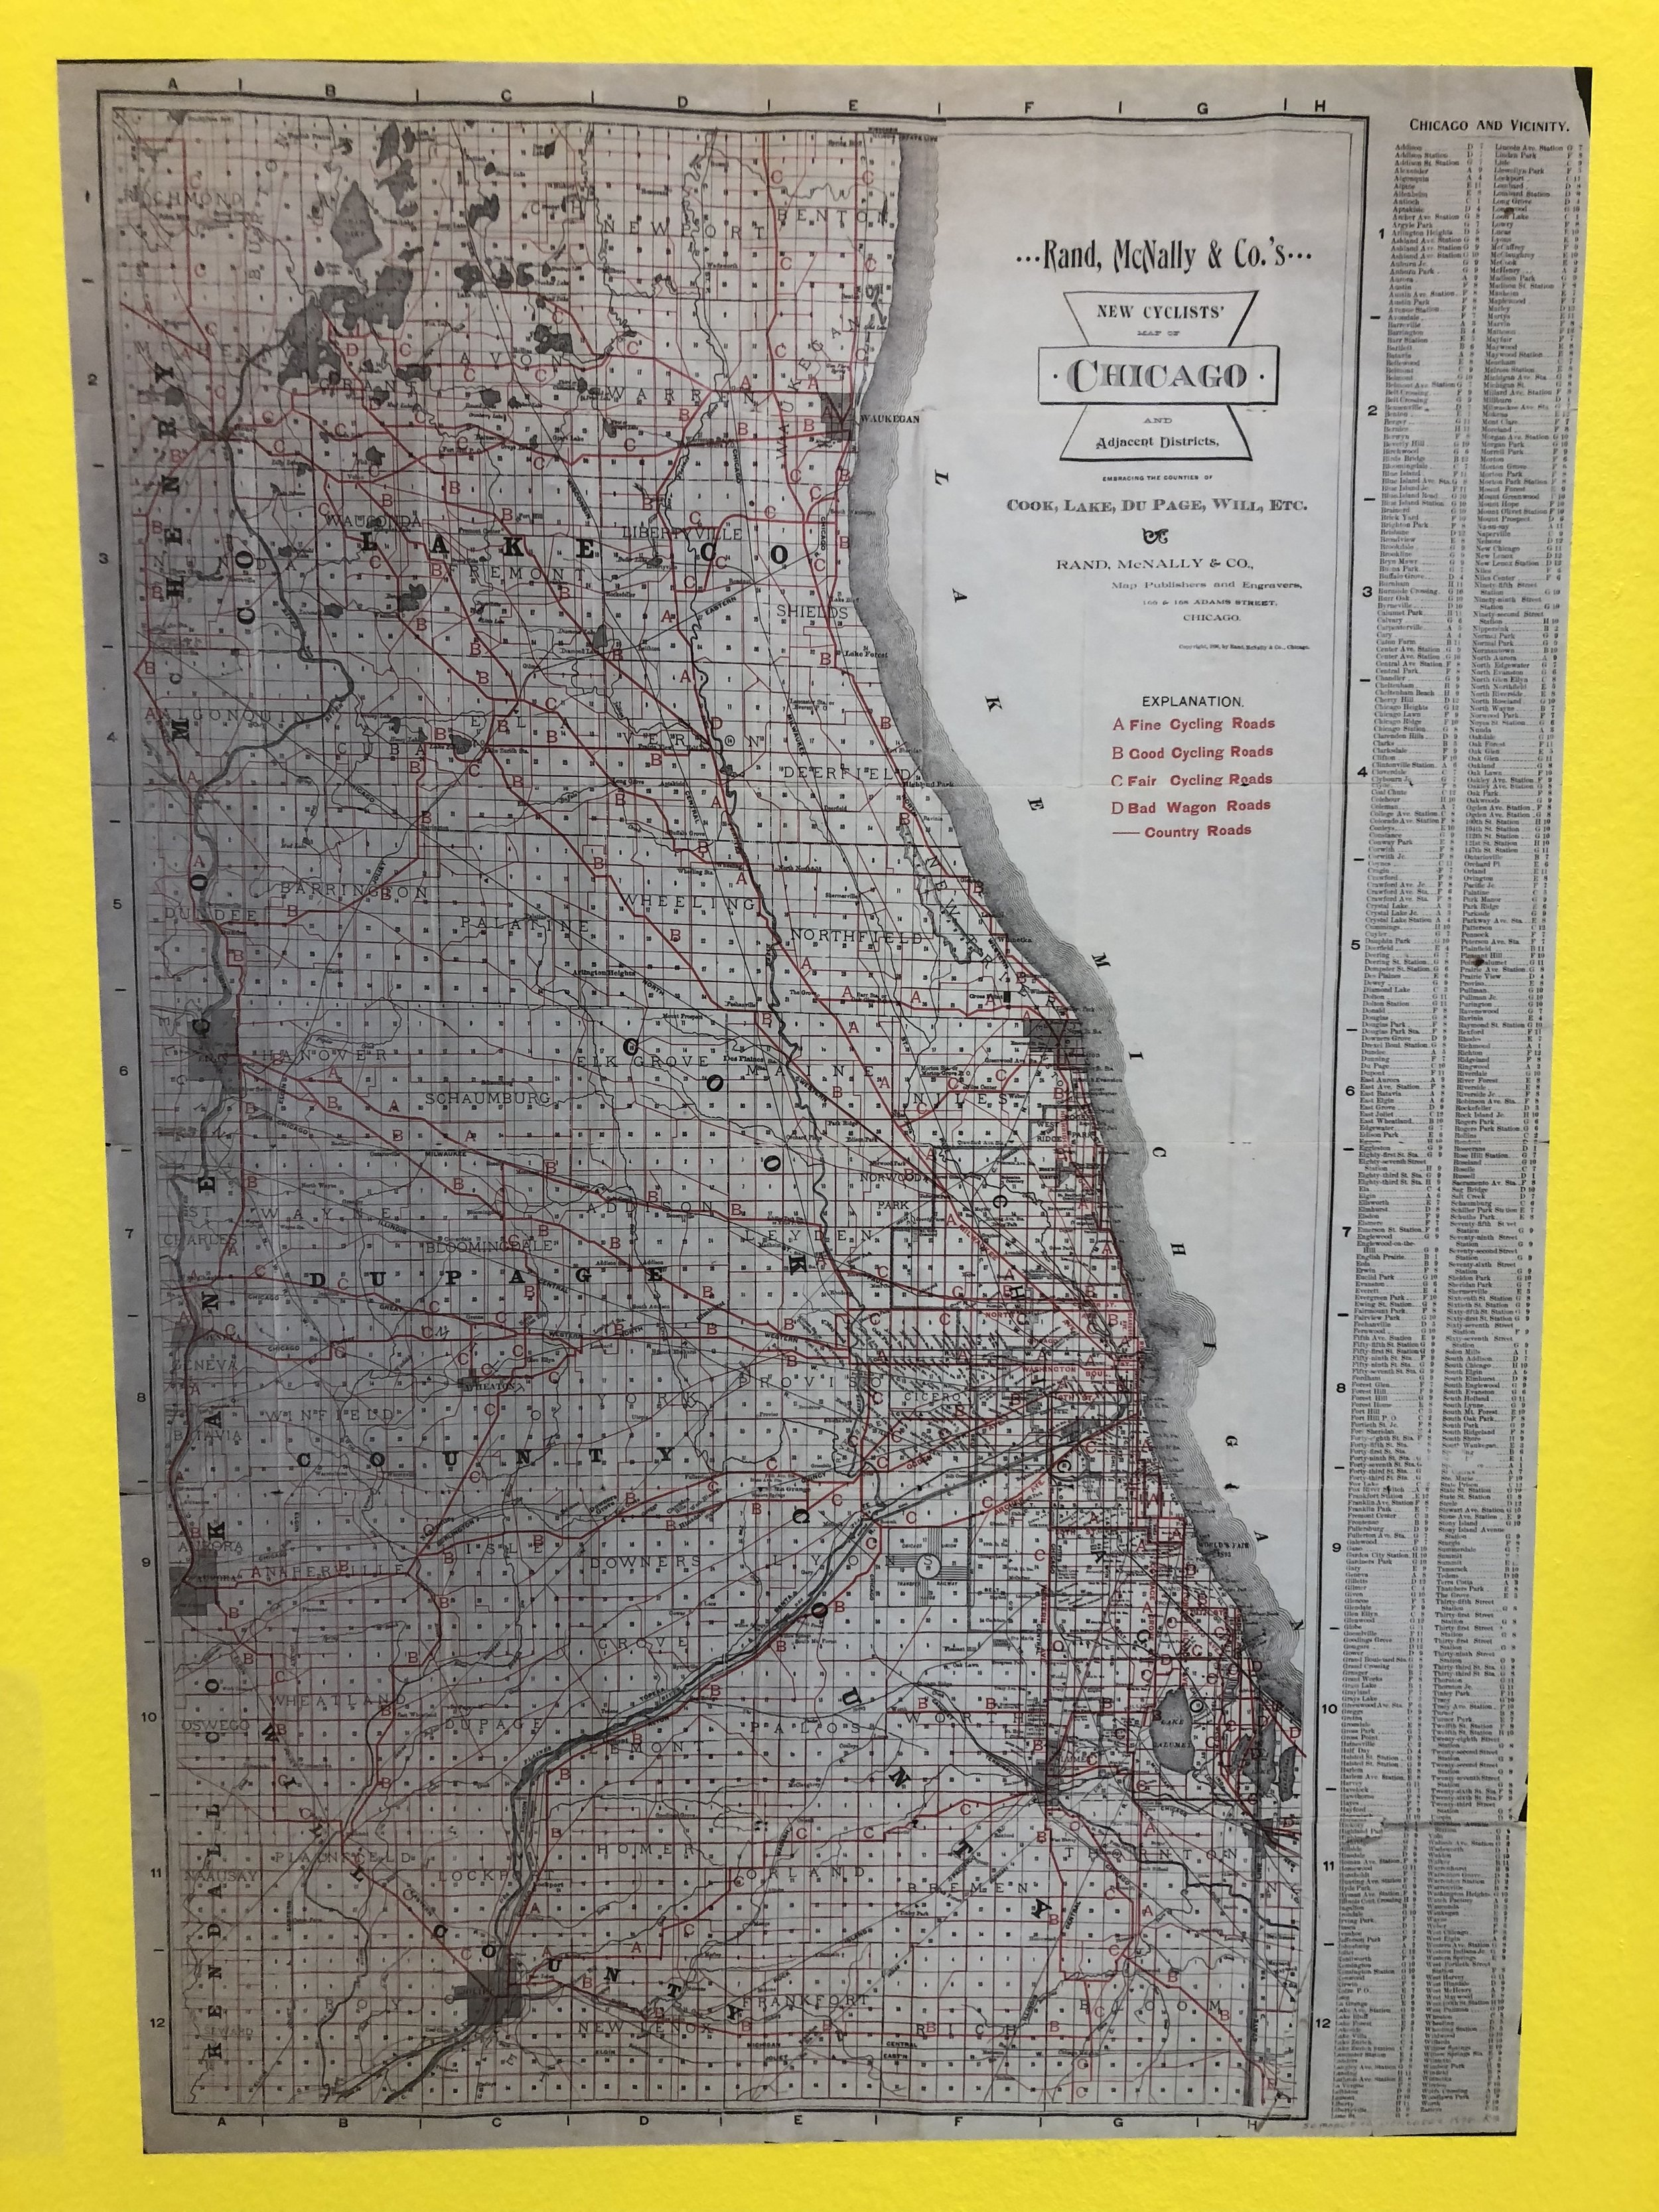 Rand McNally's cycling map of Chicago could be considered one of the very first spot maps.